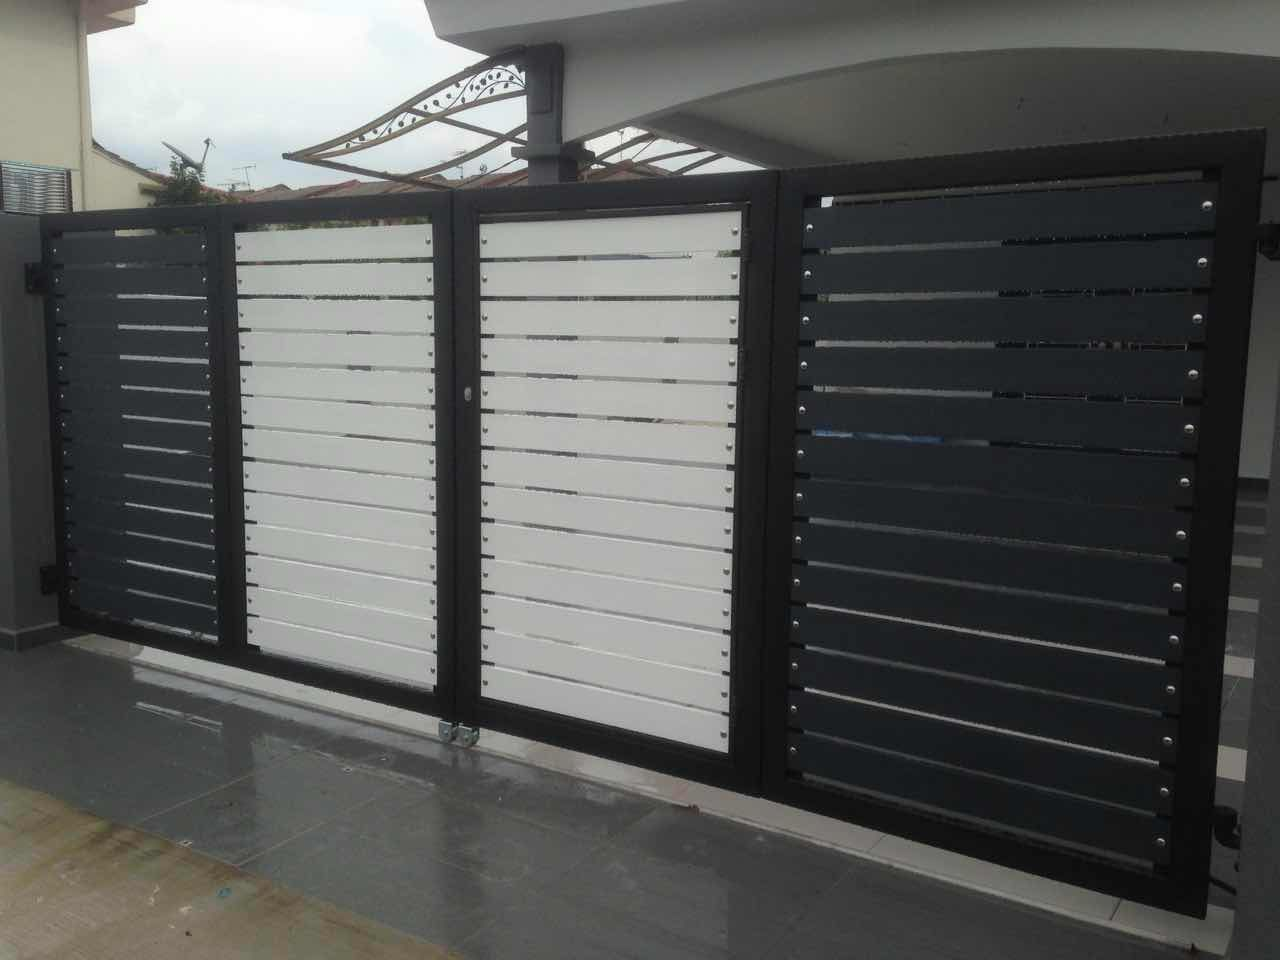 Stainless Steel Entrance Gate 04 | Stainless Steel Gate